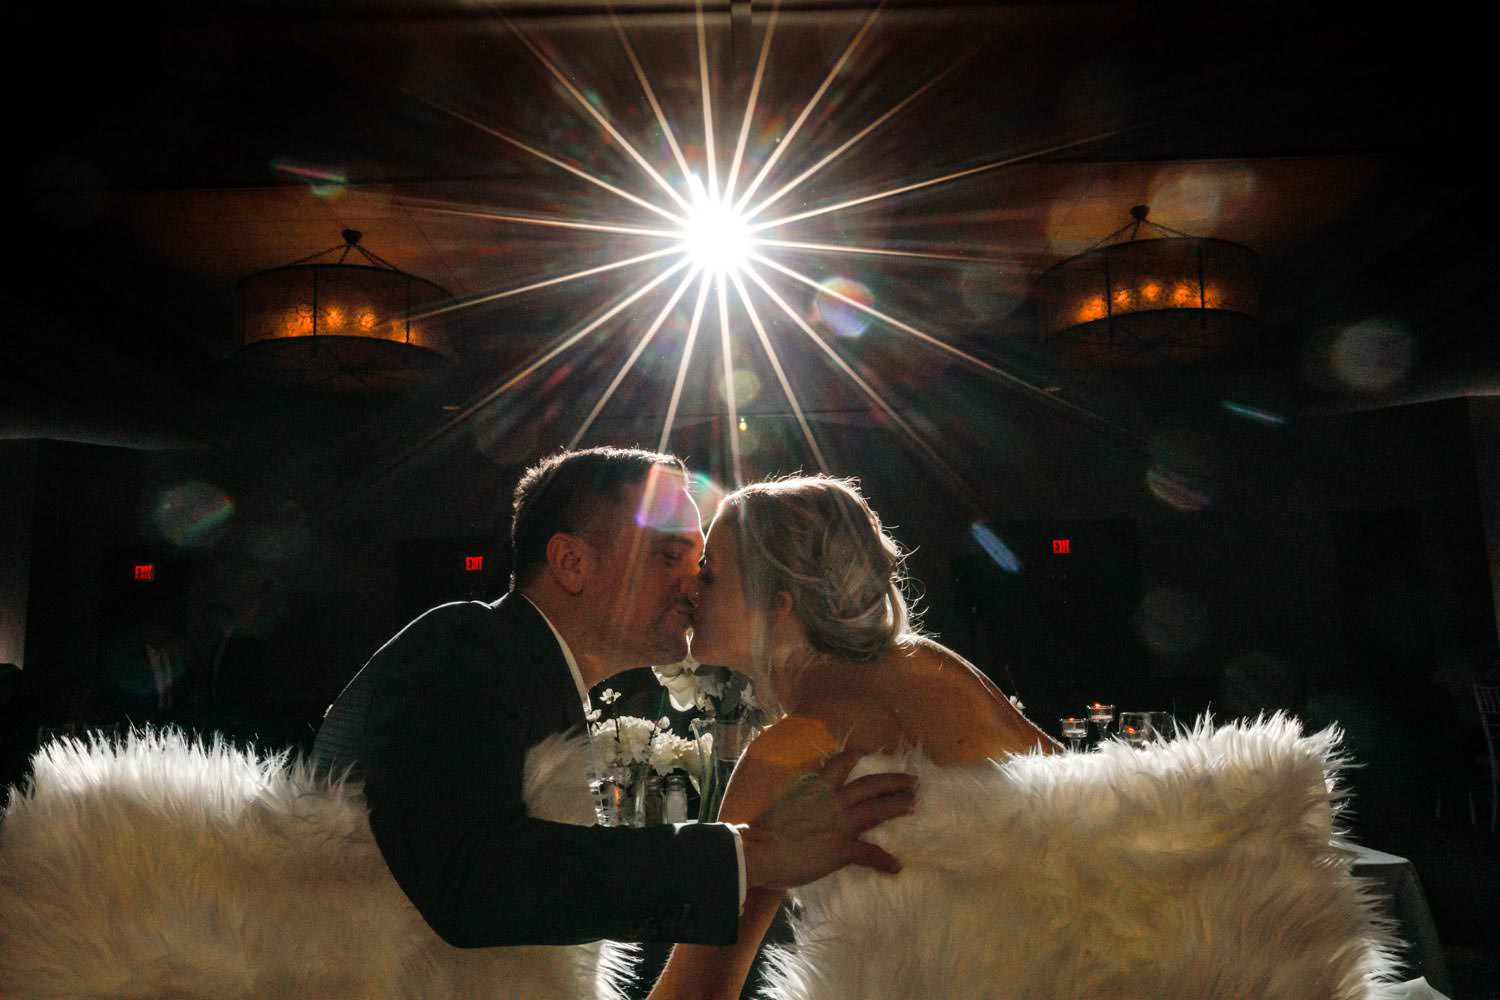 bride and groom kiss while sitting in chairs with a large starburst from photographer flash overhead